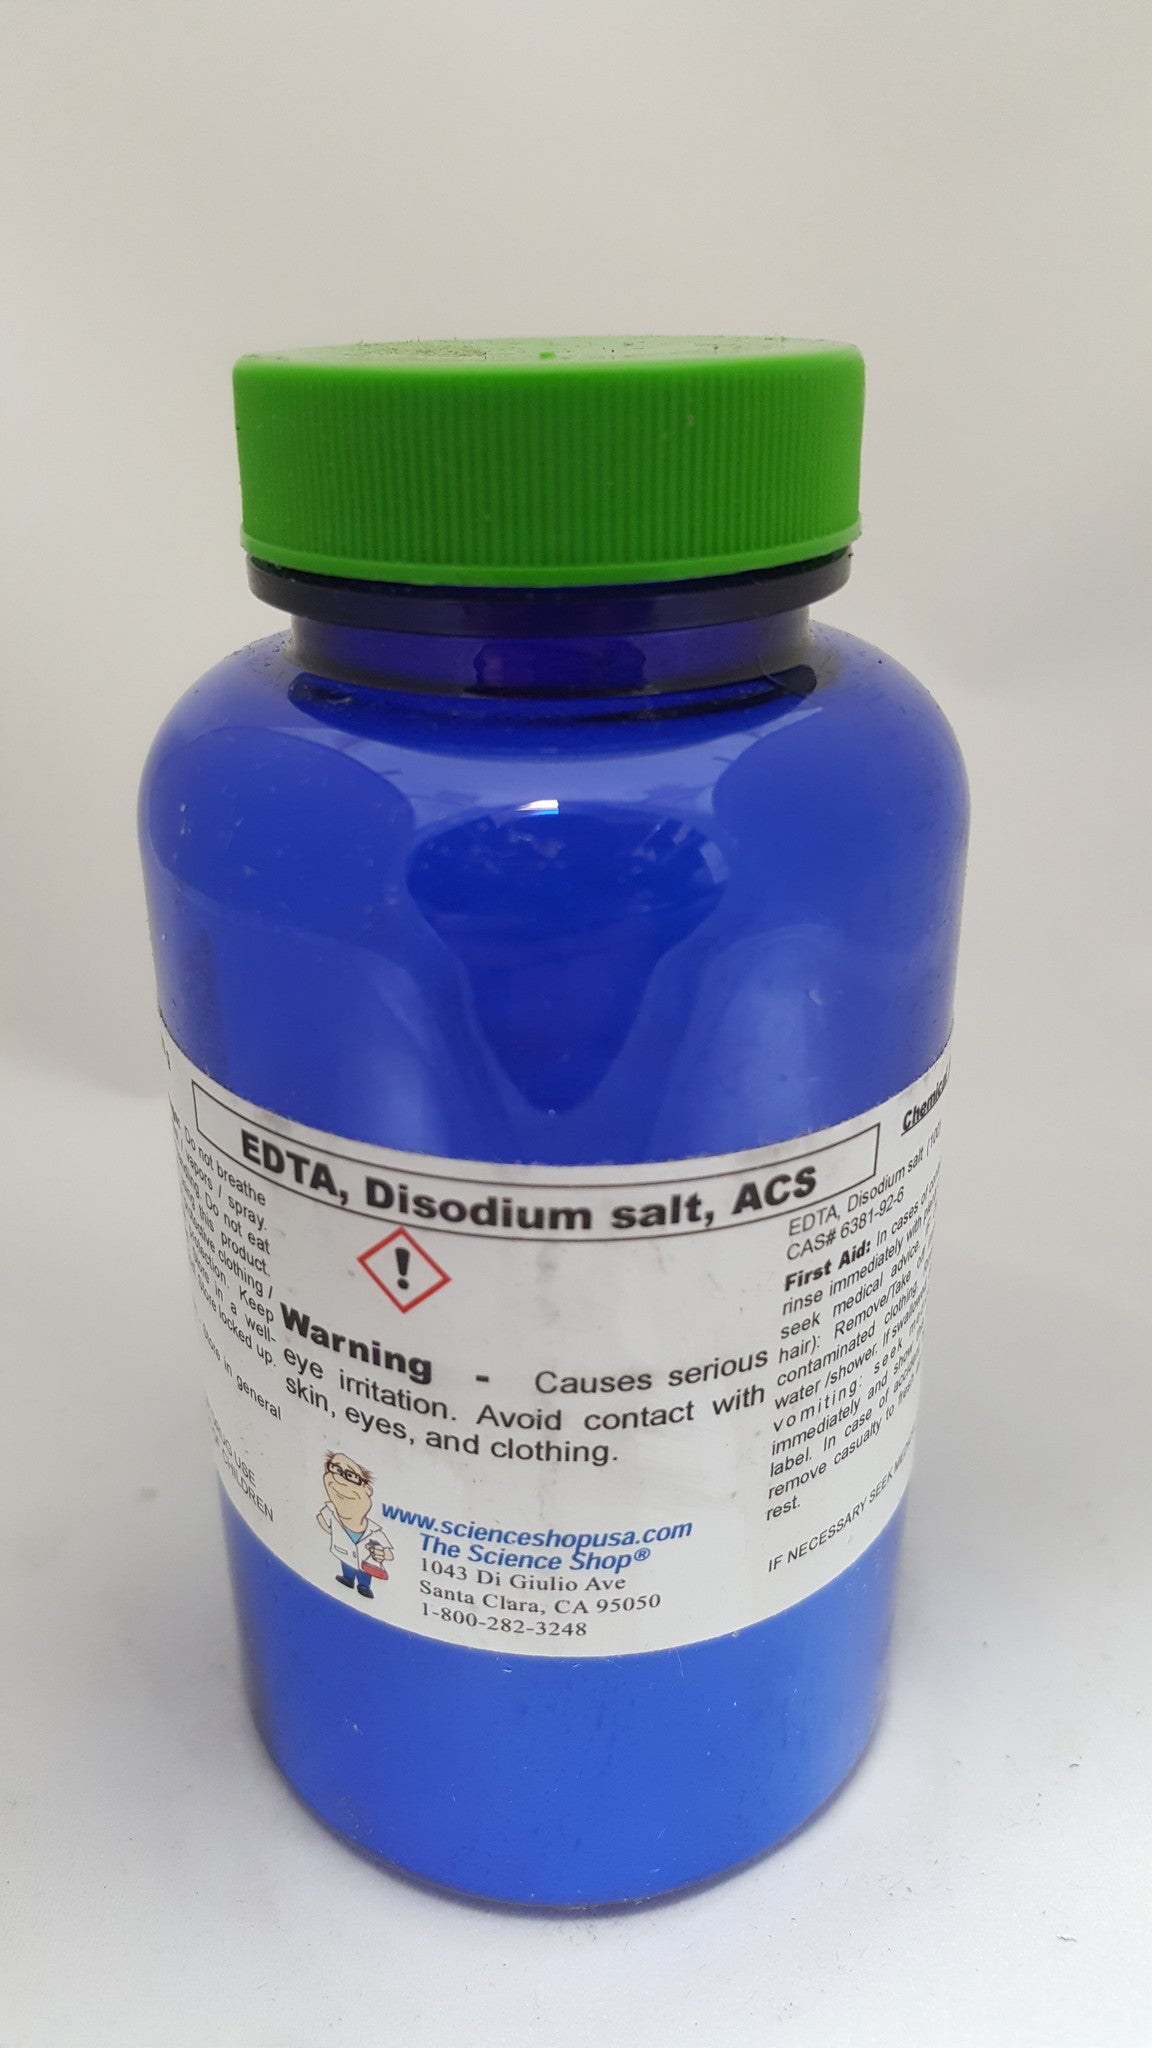 EDTA DISODIUM SALT, POWDER, REAGENT 100G